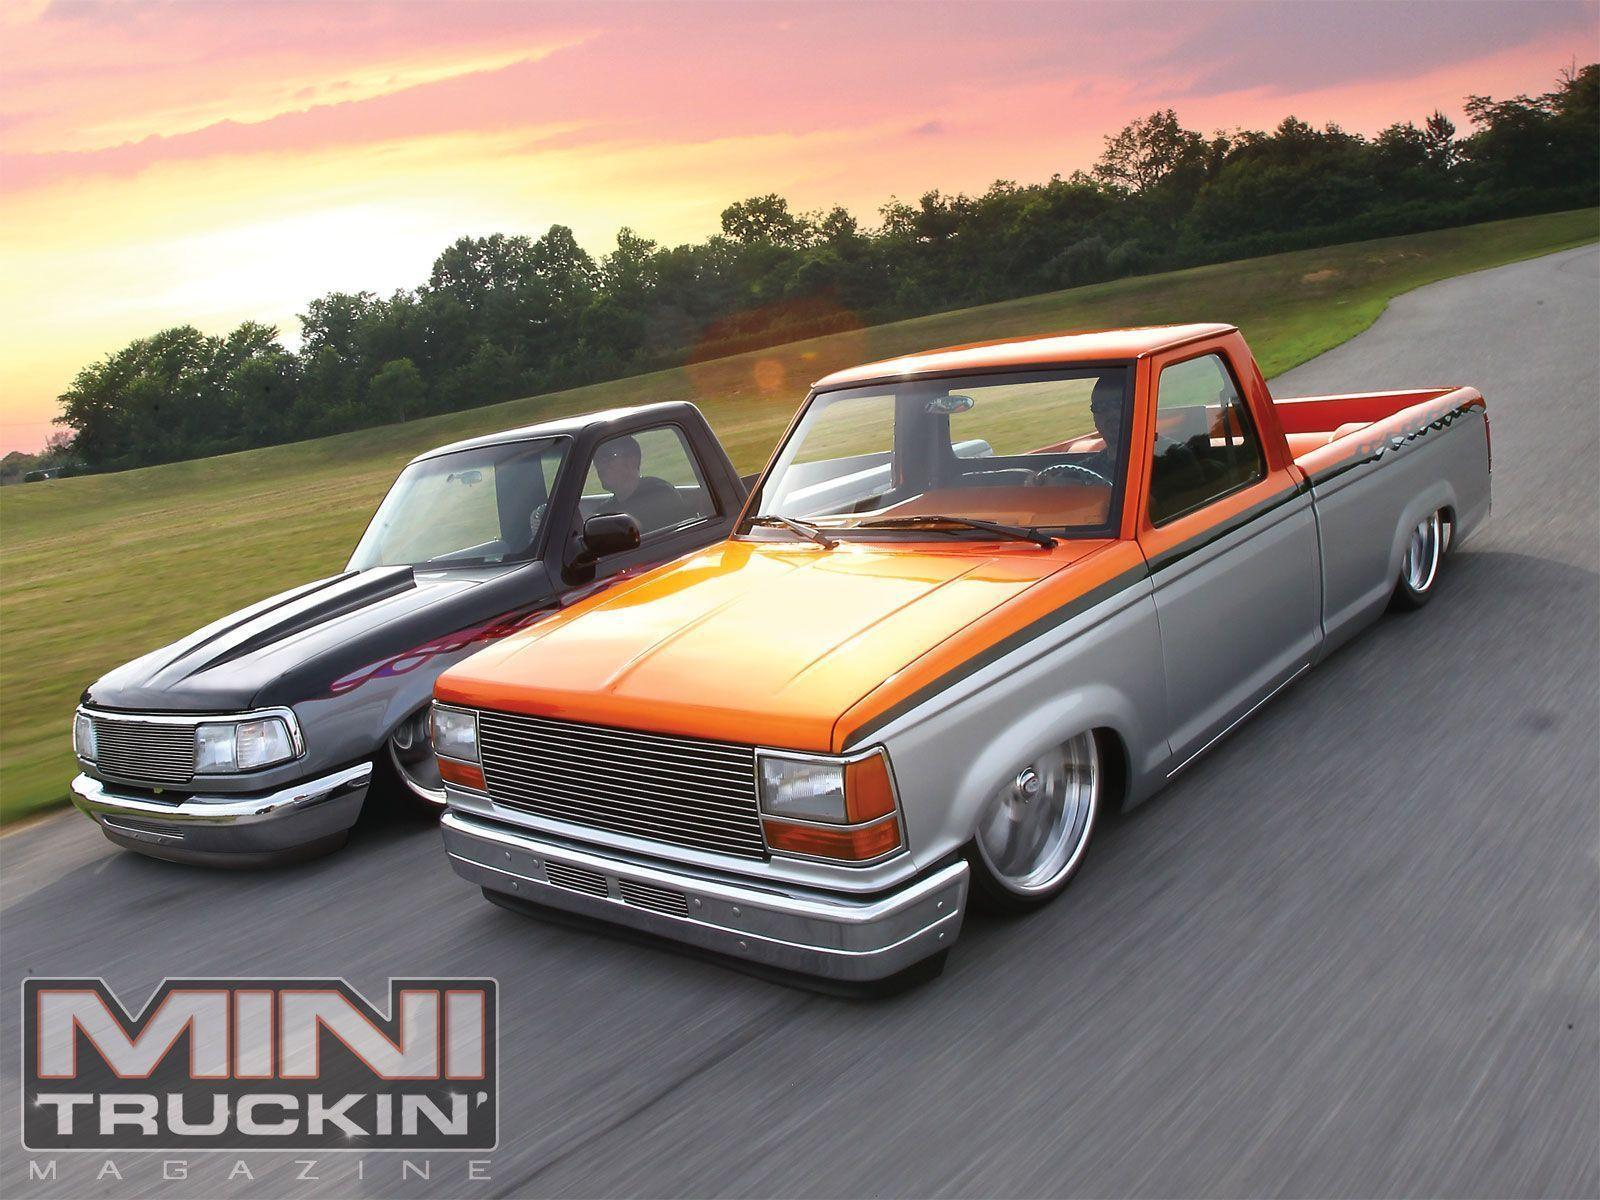 Mini Truckin Wallpapers